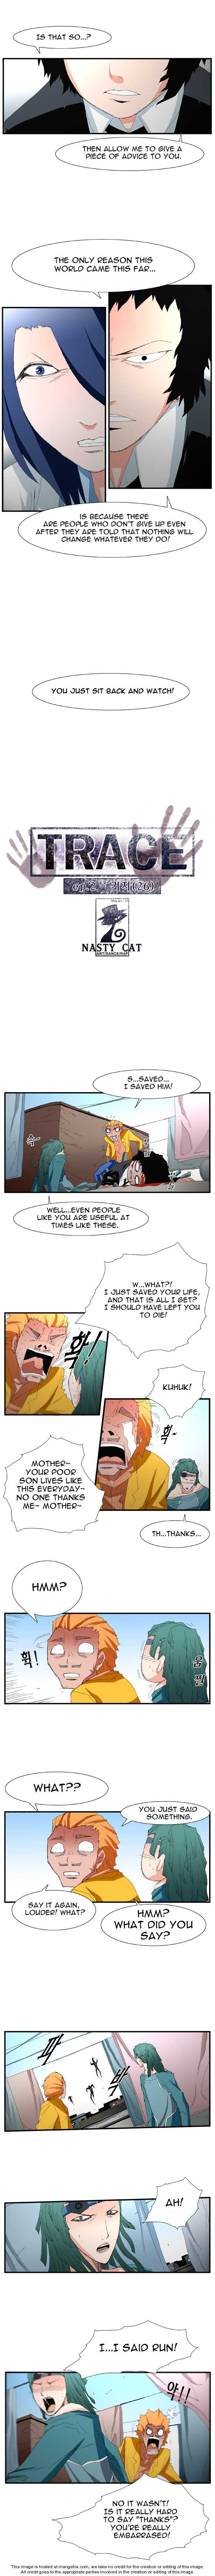 Trace 26 Page 1